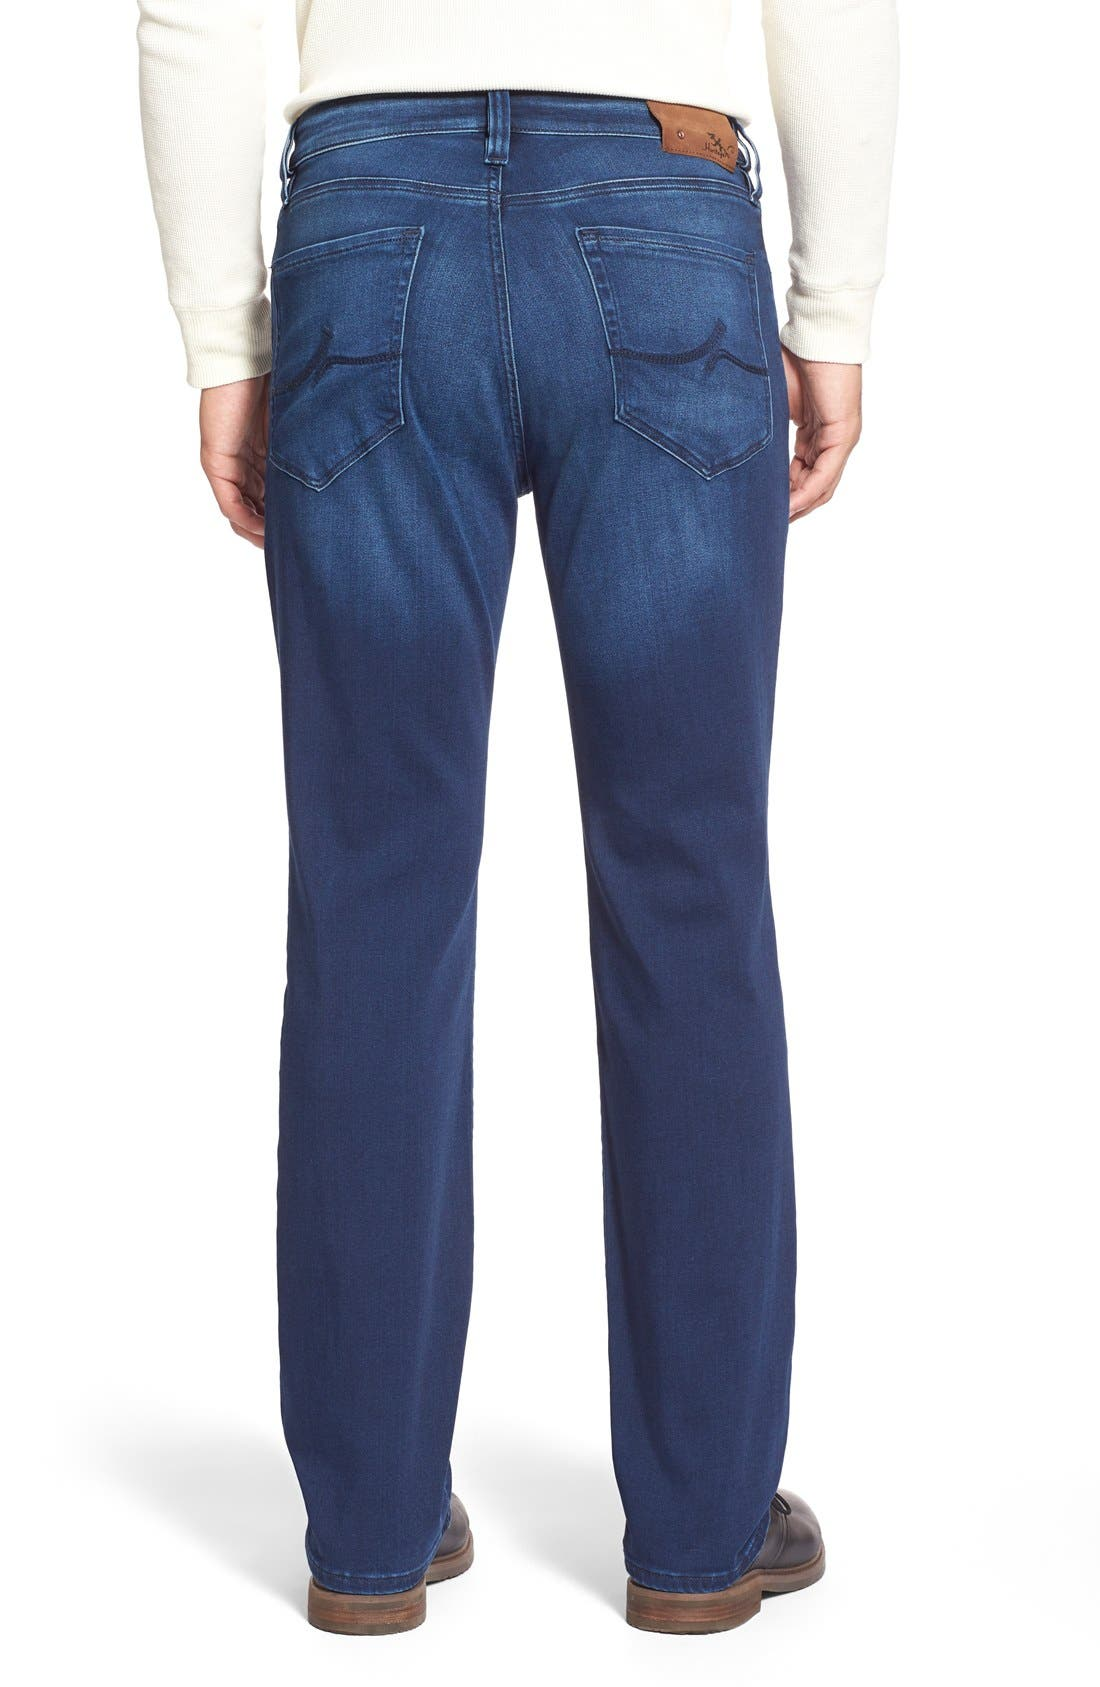 'Charisma' Relaxed Fit Jeans,                             Alternate thumbnail 2, color,                             Select Indigo